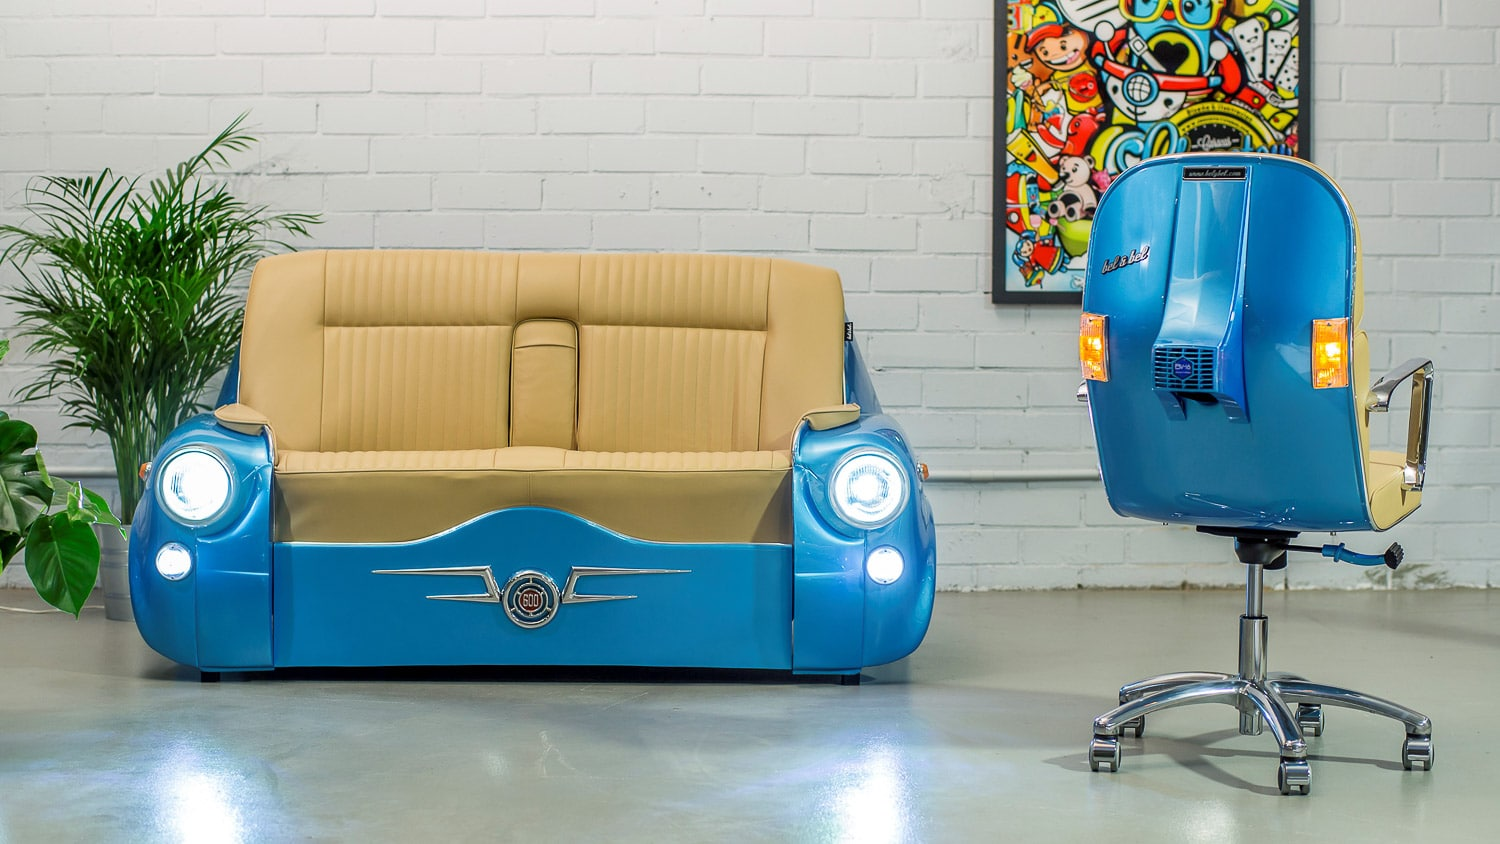 sofa 600- car couch, sofa made from car